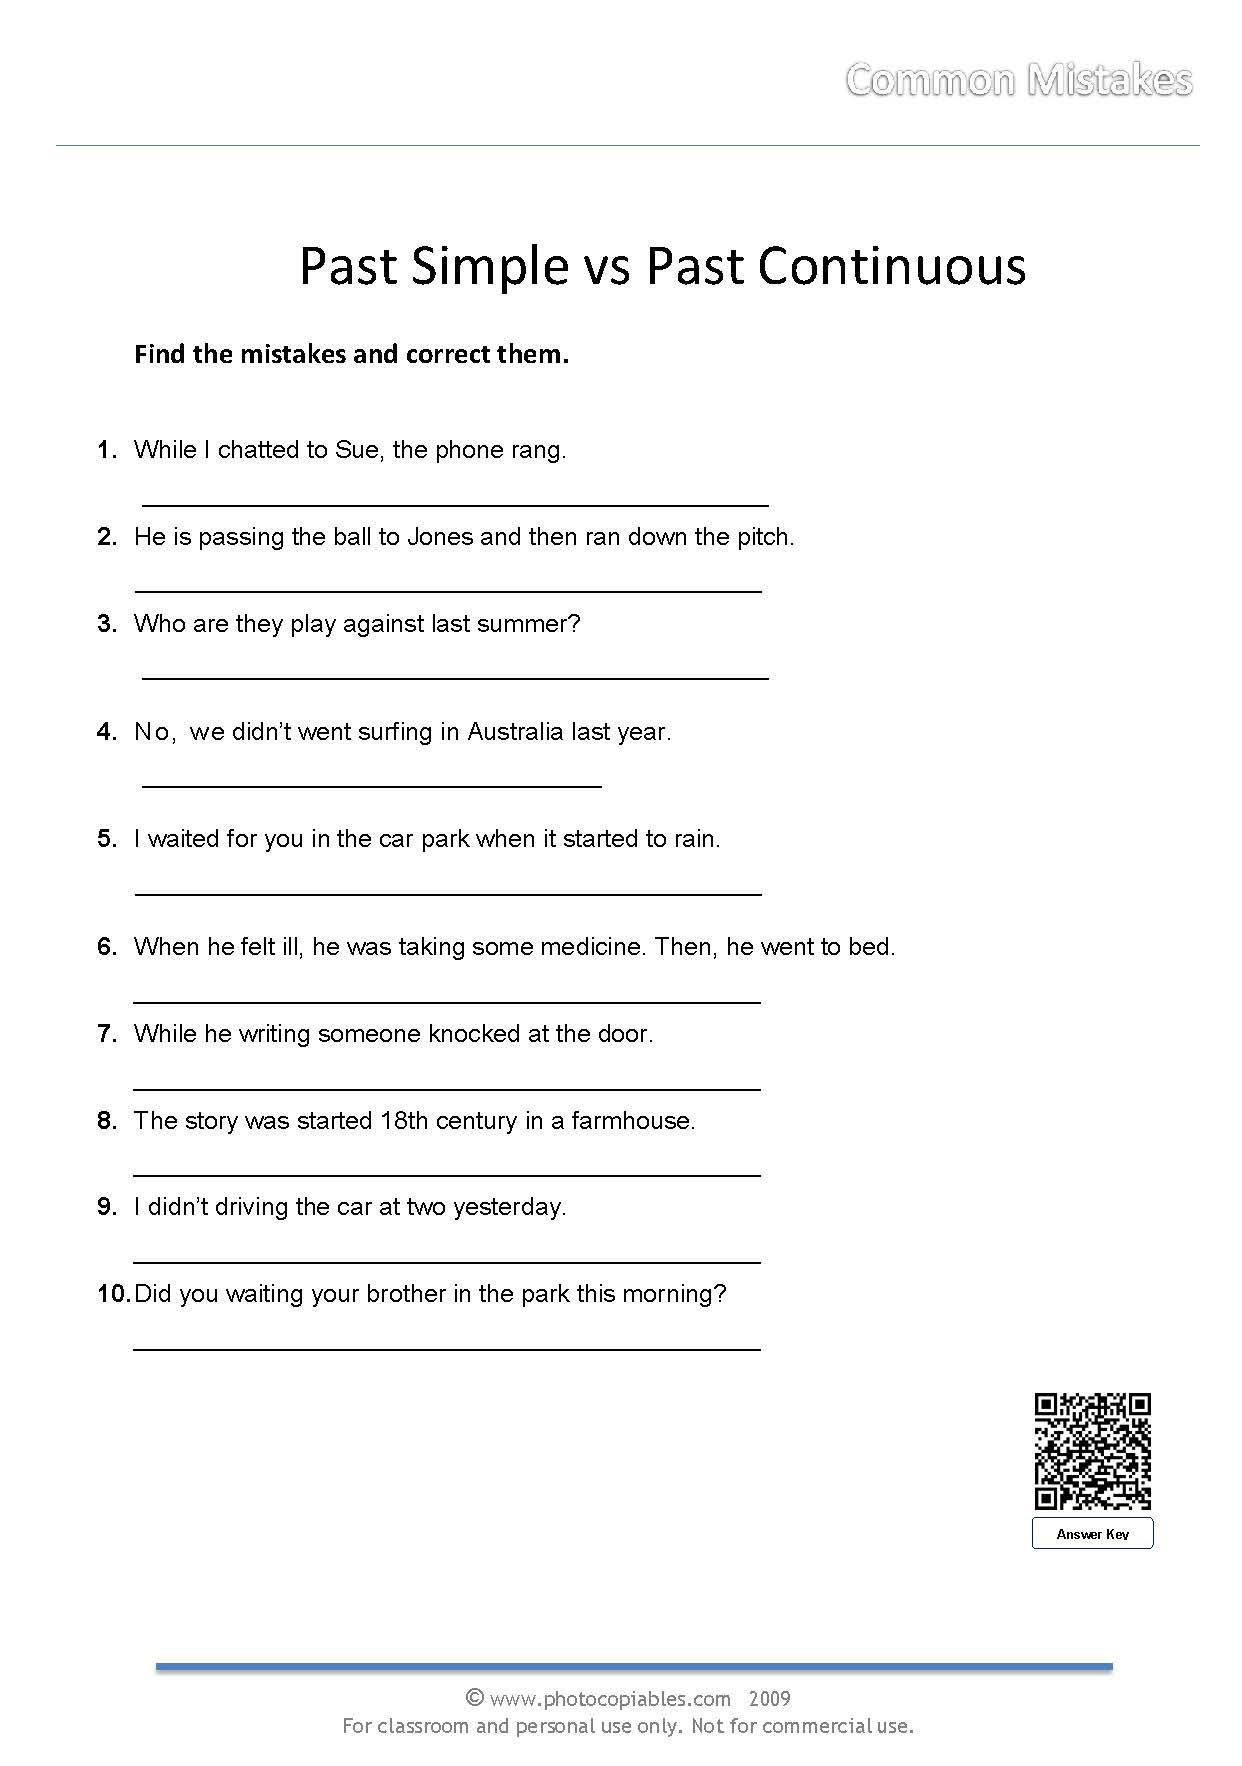 Past Simple Vs Past Continuous Error Correction